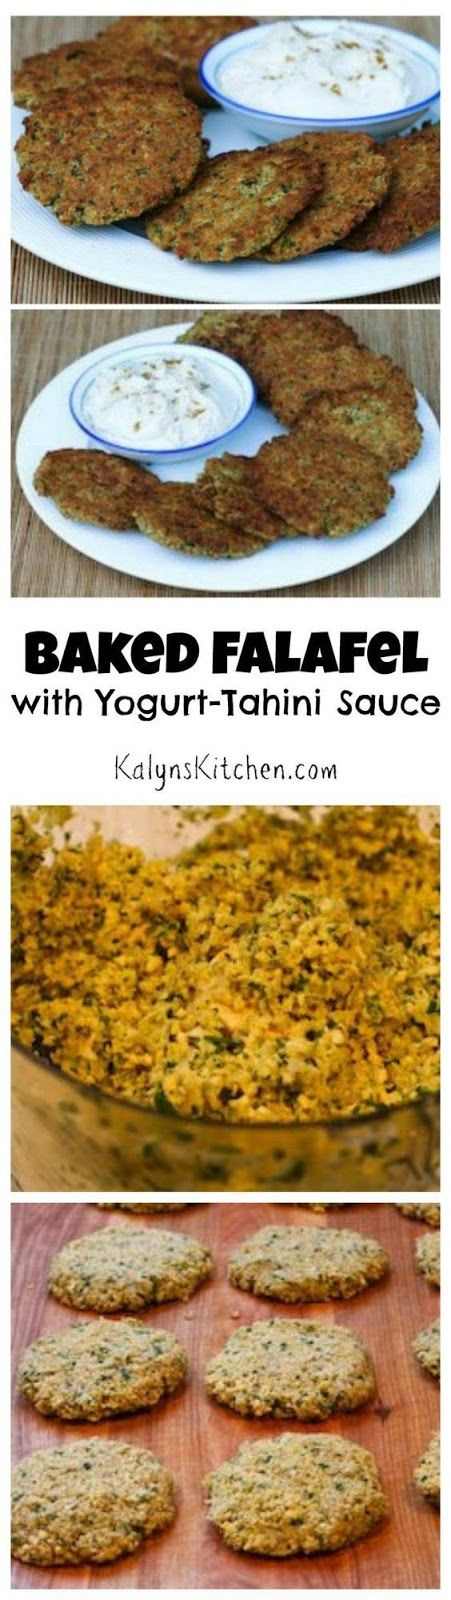 Baked Falafel Patties with a delicious Yogurt-Tahini Sauce found on KalynsKitchen.com.